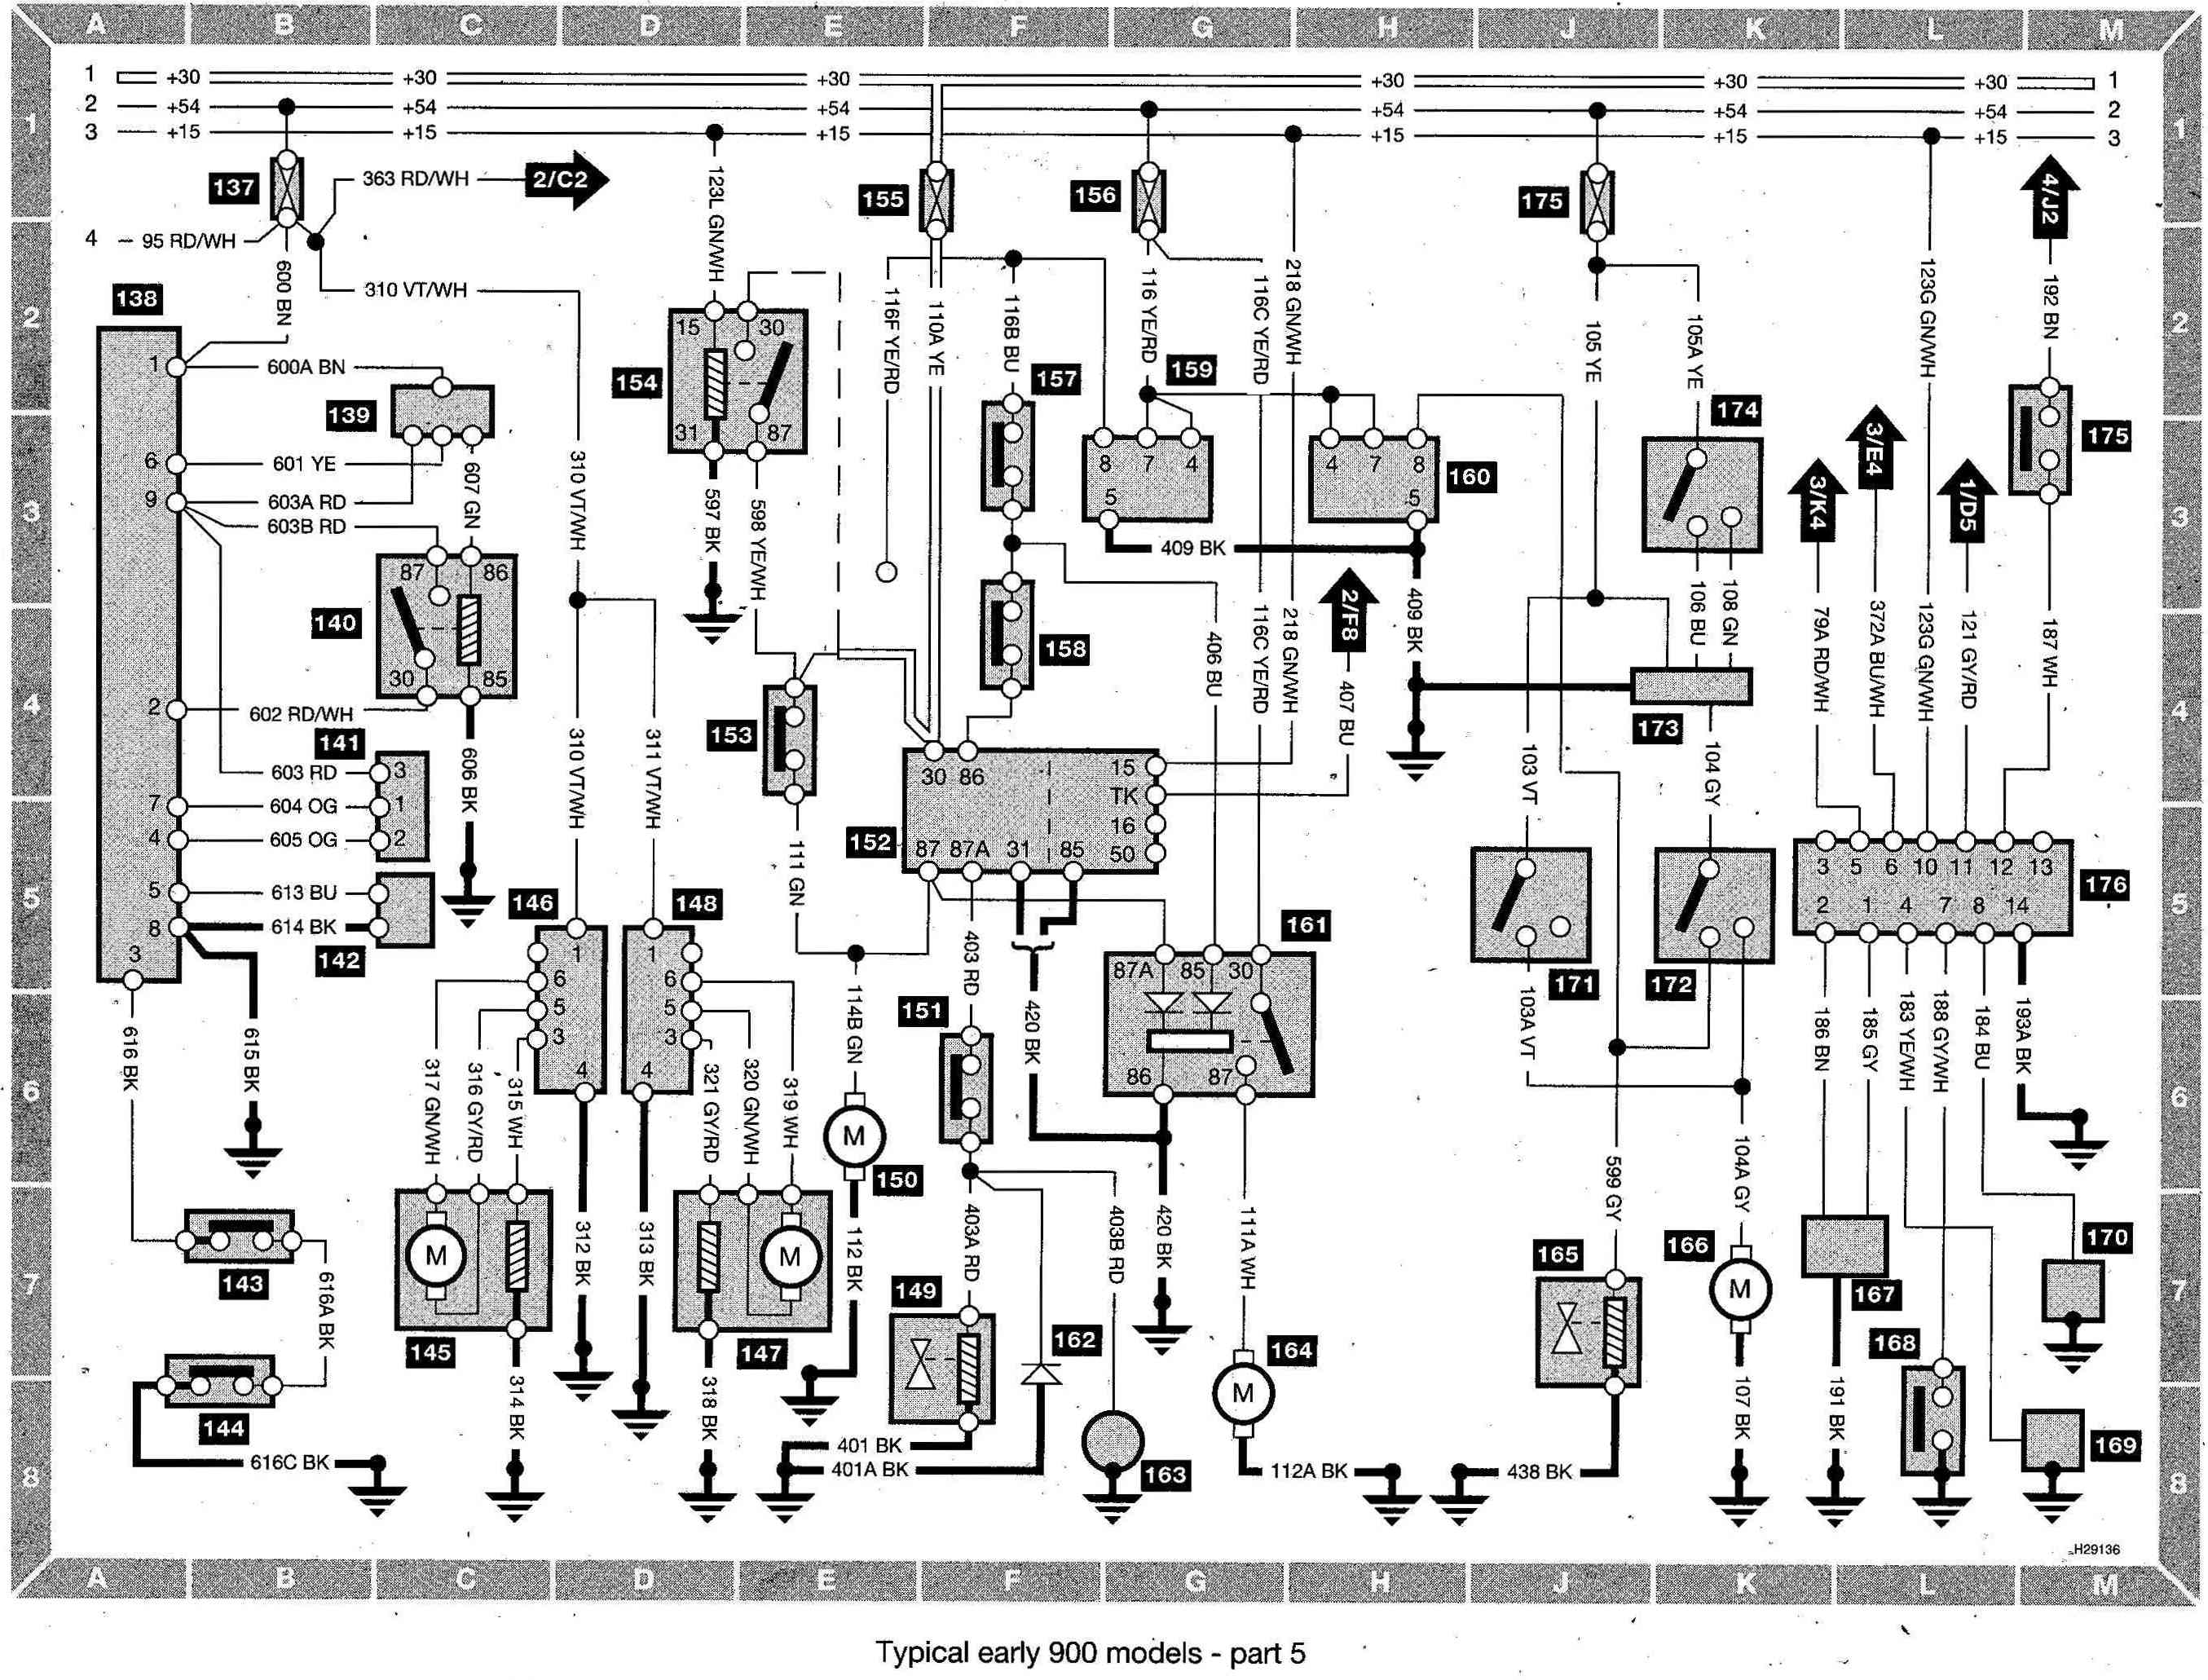 1997 saab 900 se turbo engine diagram